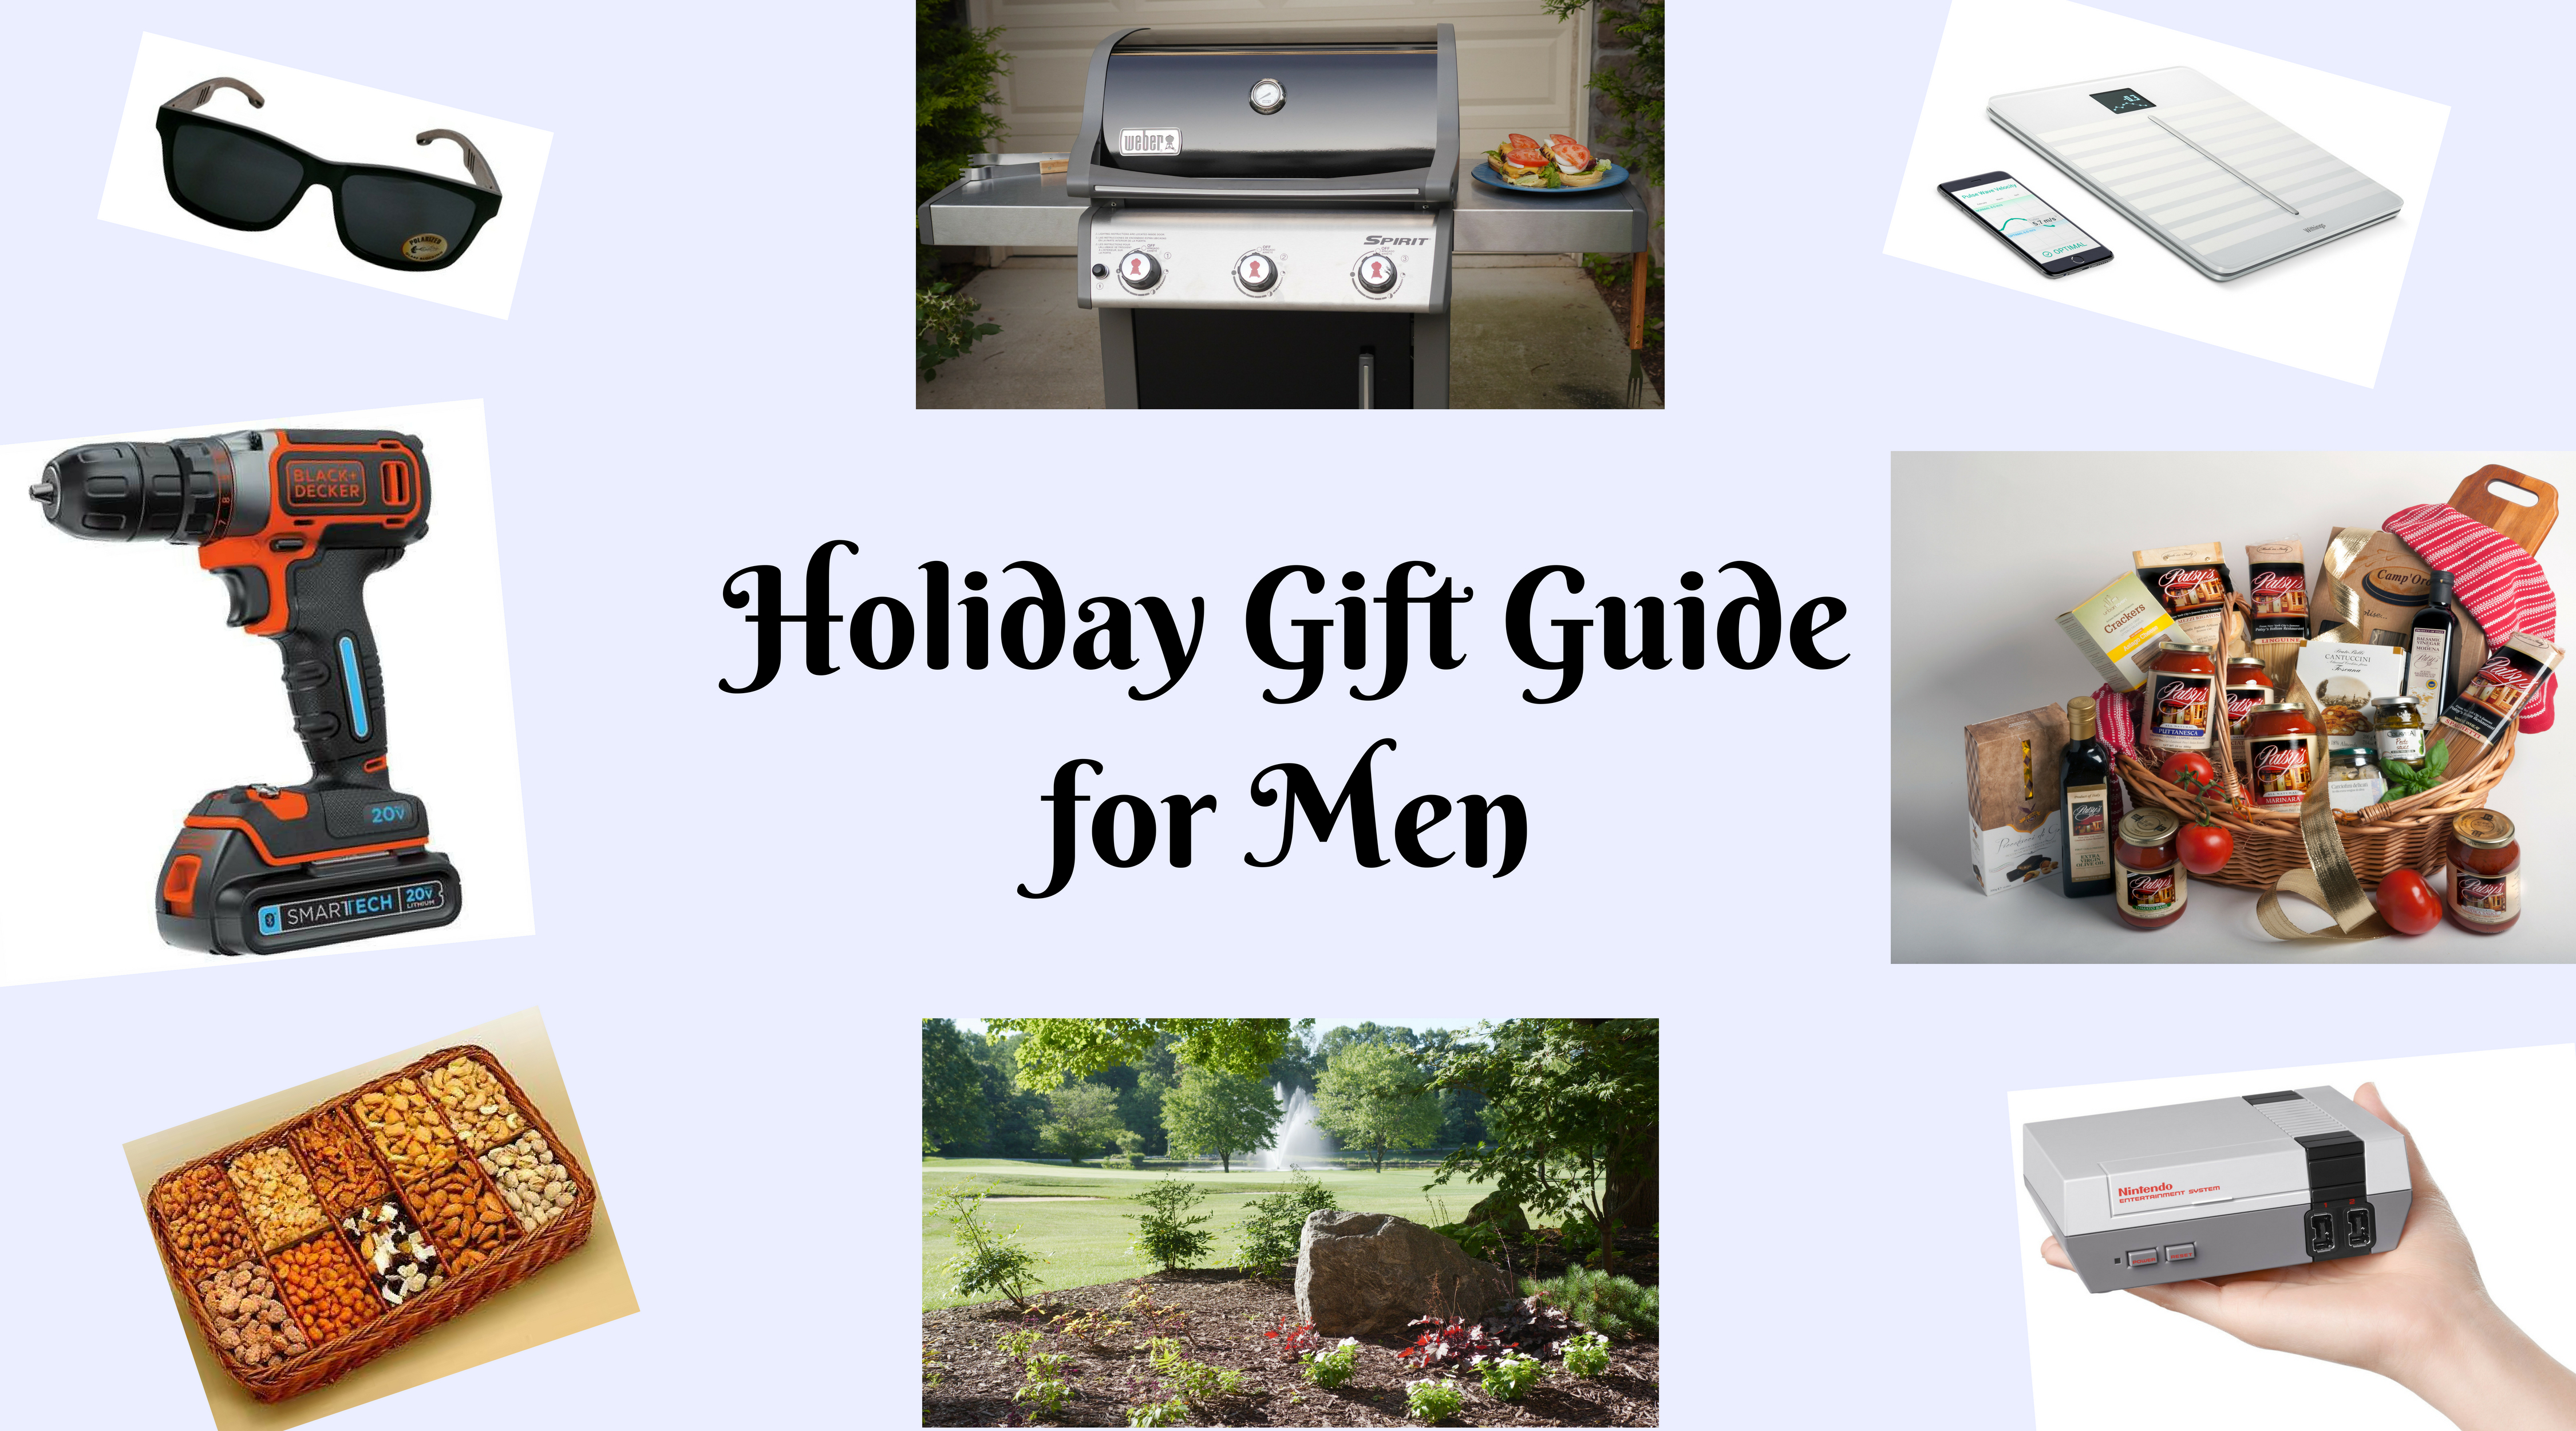 2016 Theresau0027s Reviews Holiday Gift Guide For Men